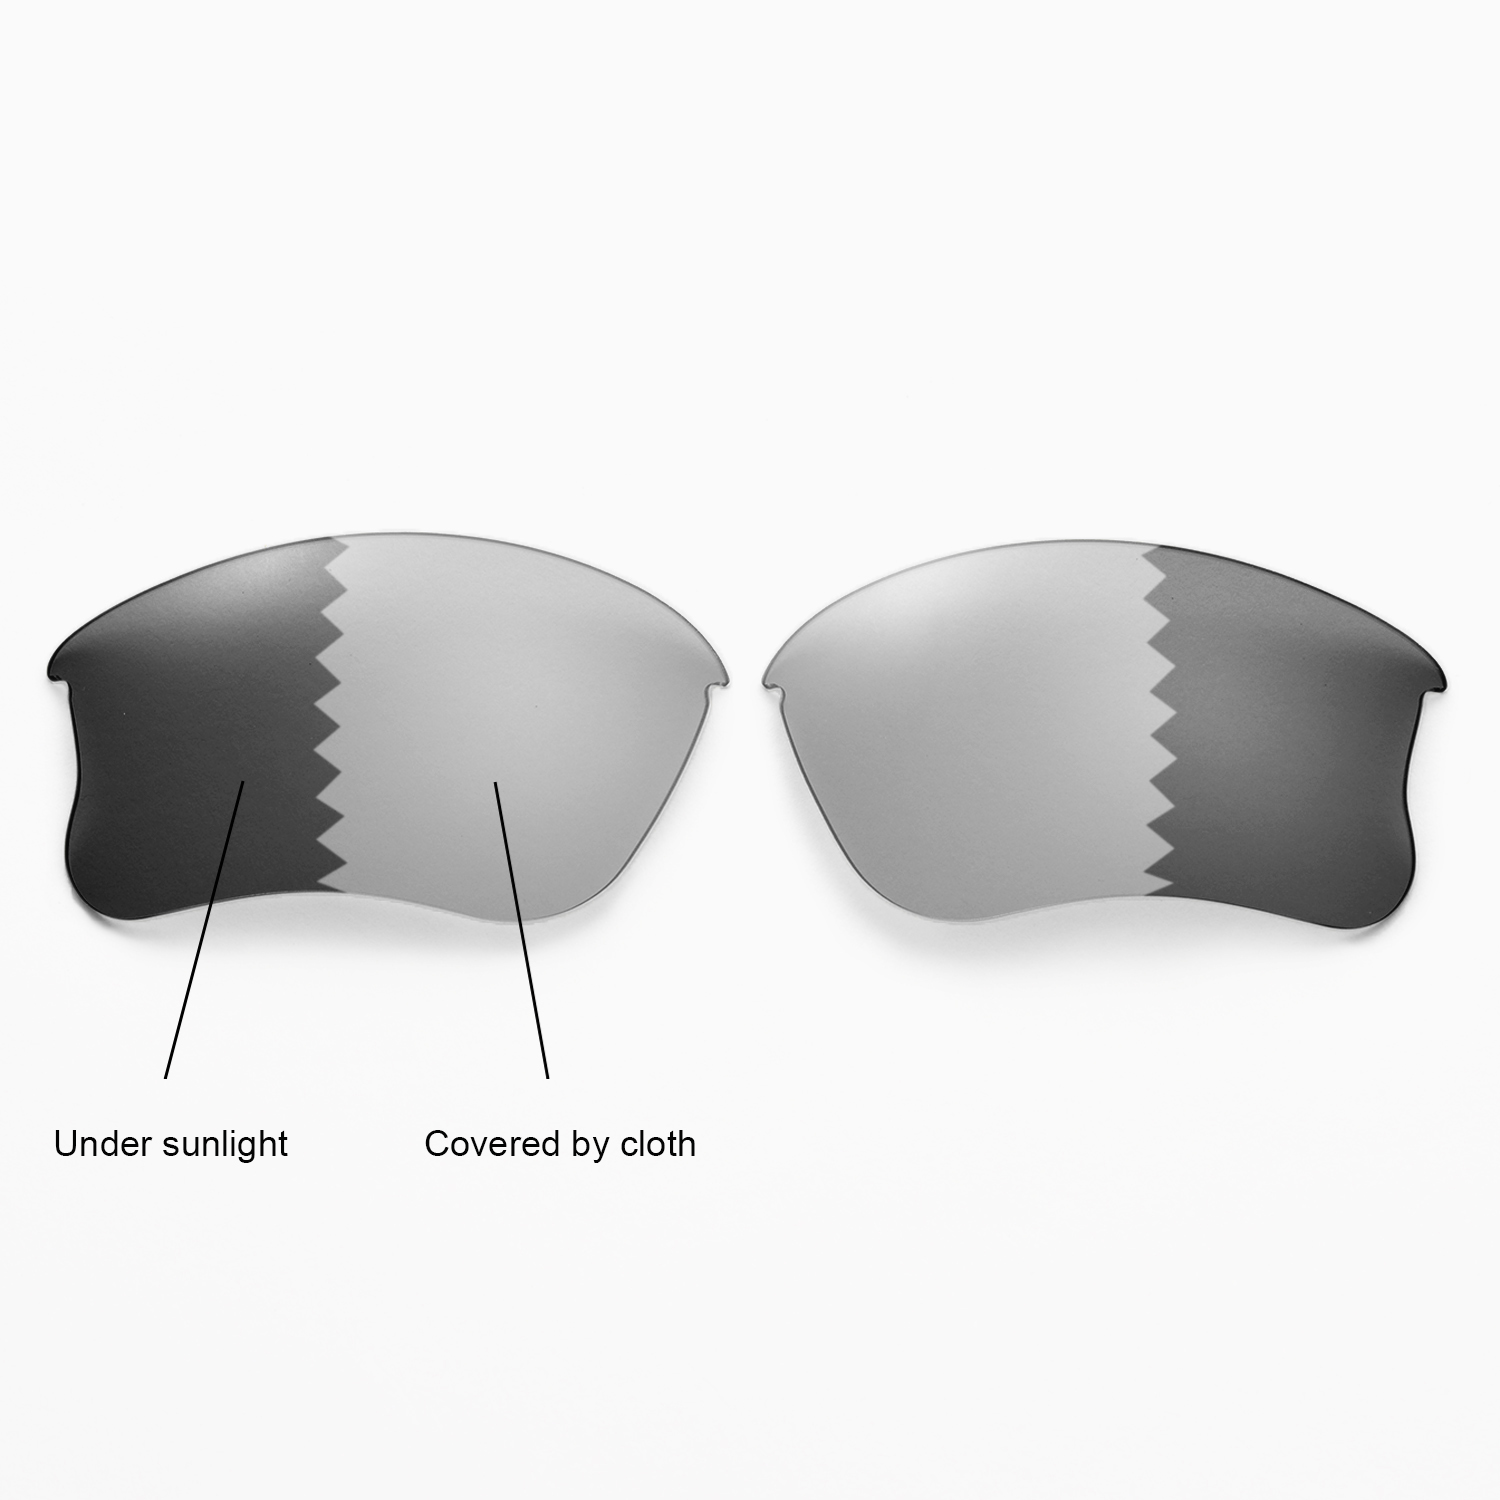 oakley half jacket xlj sunglasses sale  new walleva polarized transition/photochromic lenses for oakley flak jacket xlj